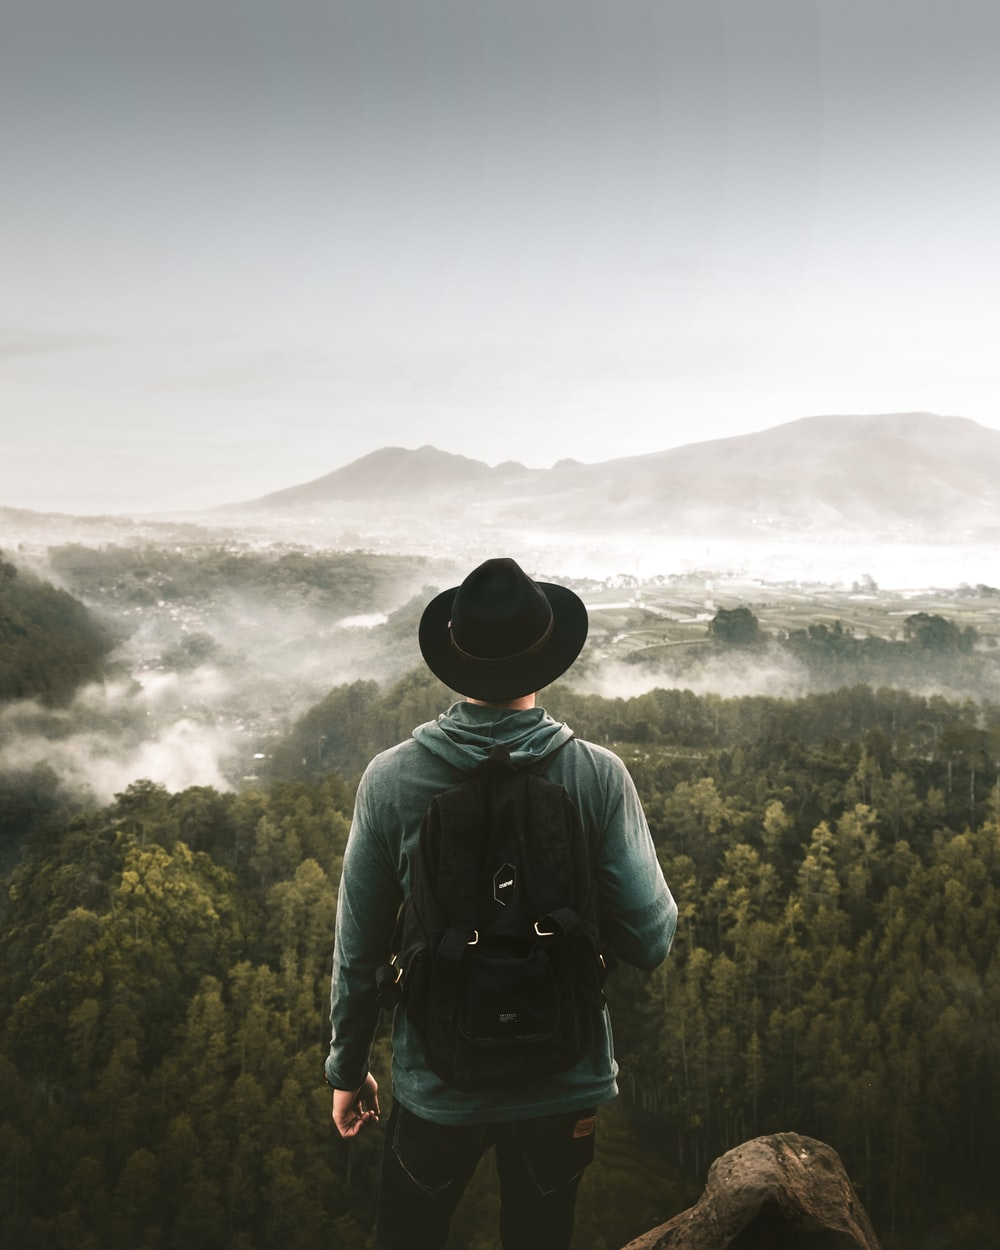 man standing on mountain top overlooking green-leafed trees at foggy daytime